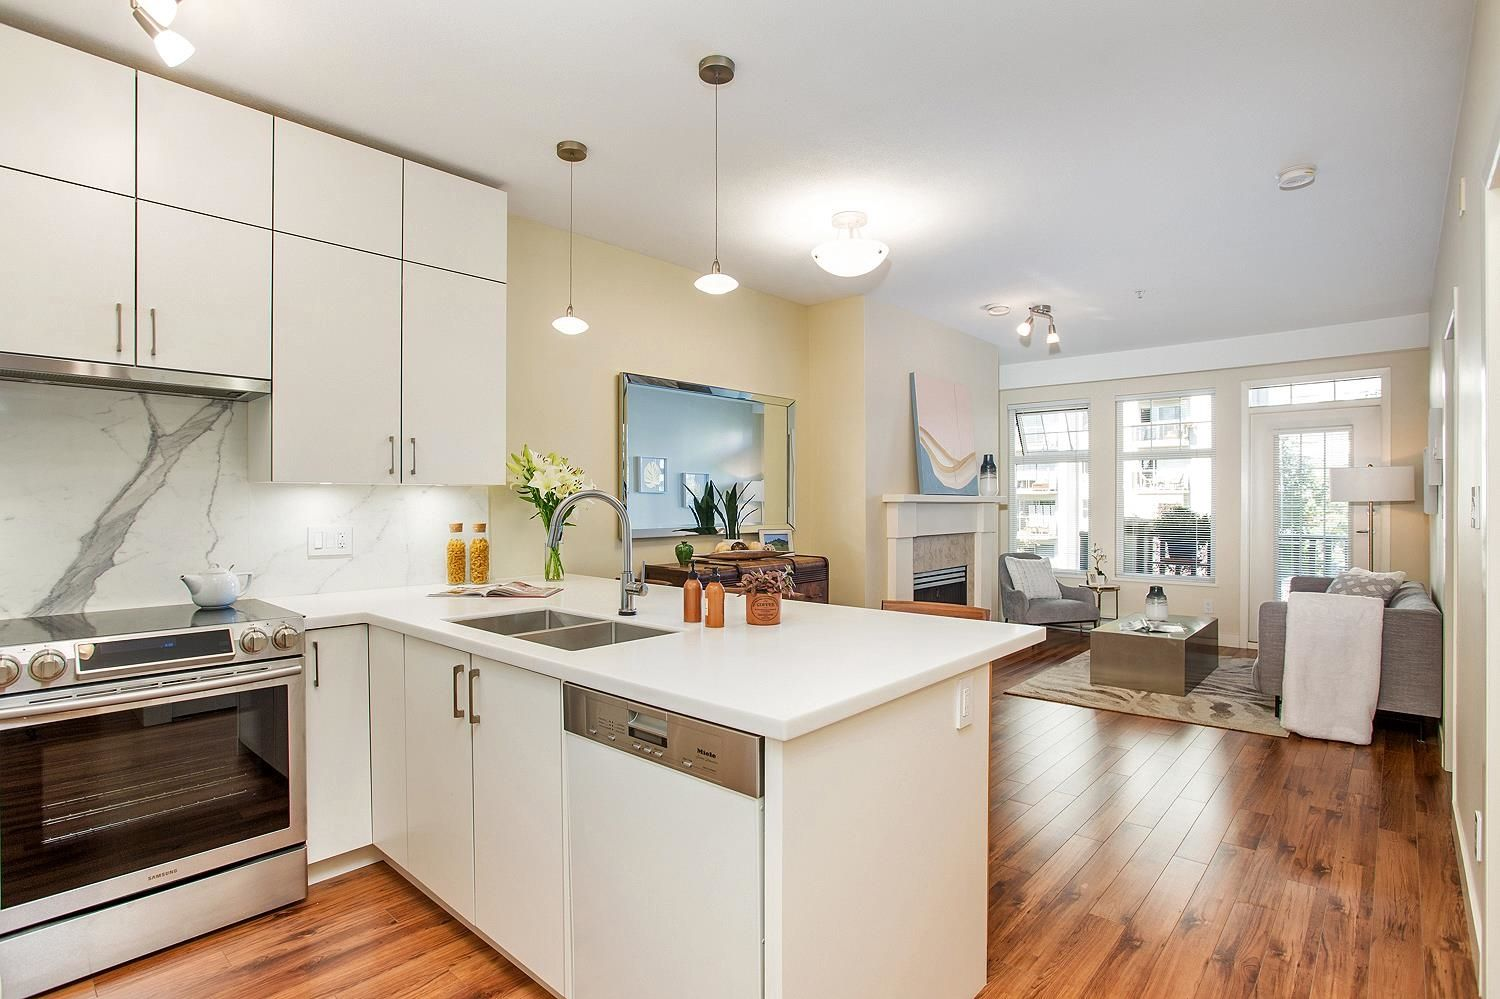 """Main Photo: 310 1388 NELSON Street in Vancouver: West End VW Condo for sale in """"Andaluca"""" (Vancouver West)  : MLS®# R2616916"""